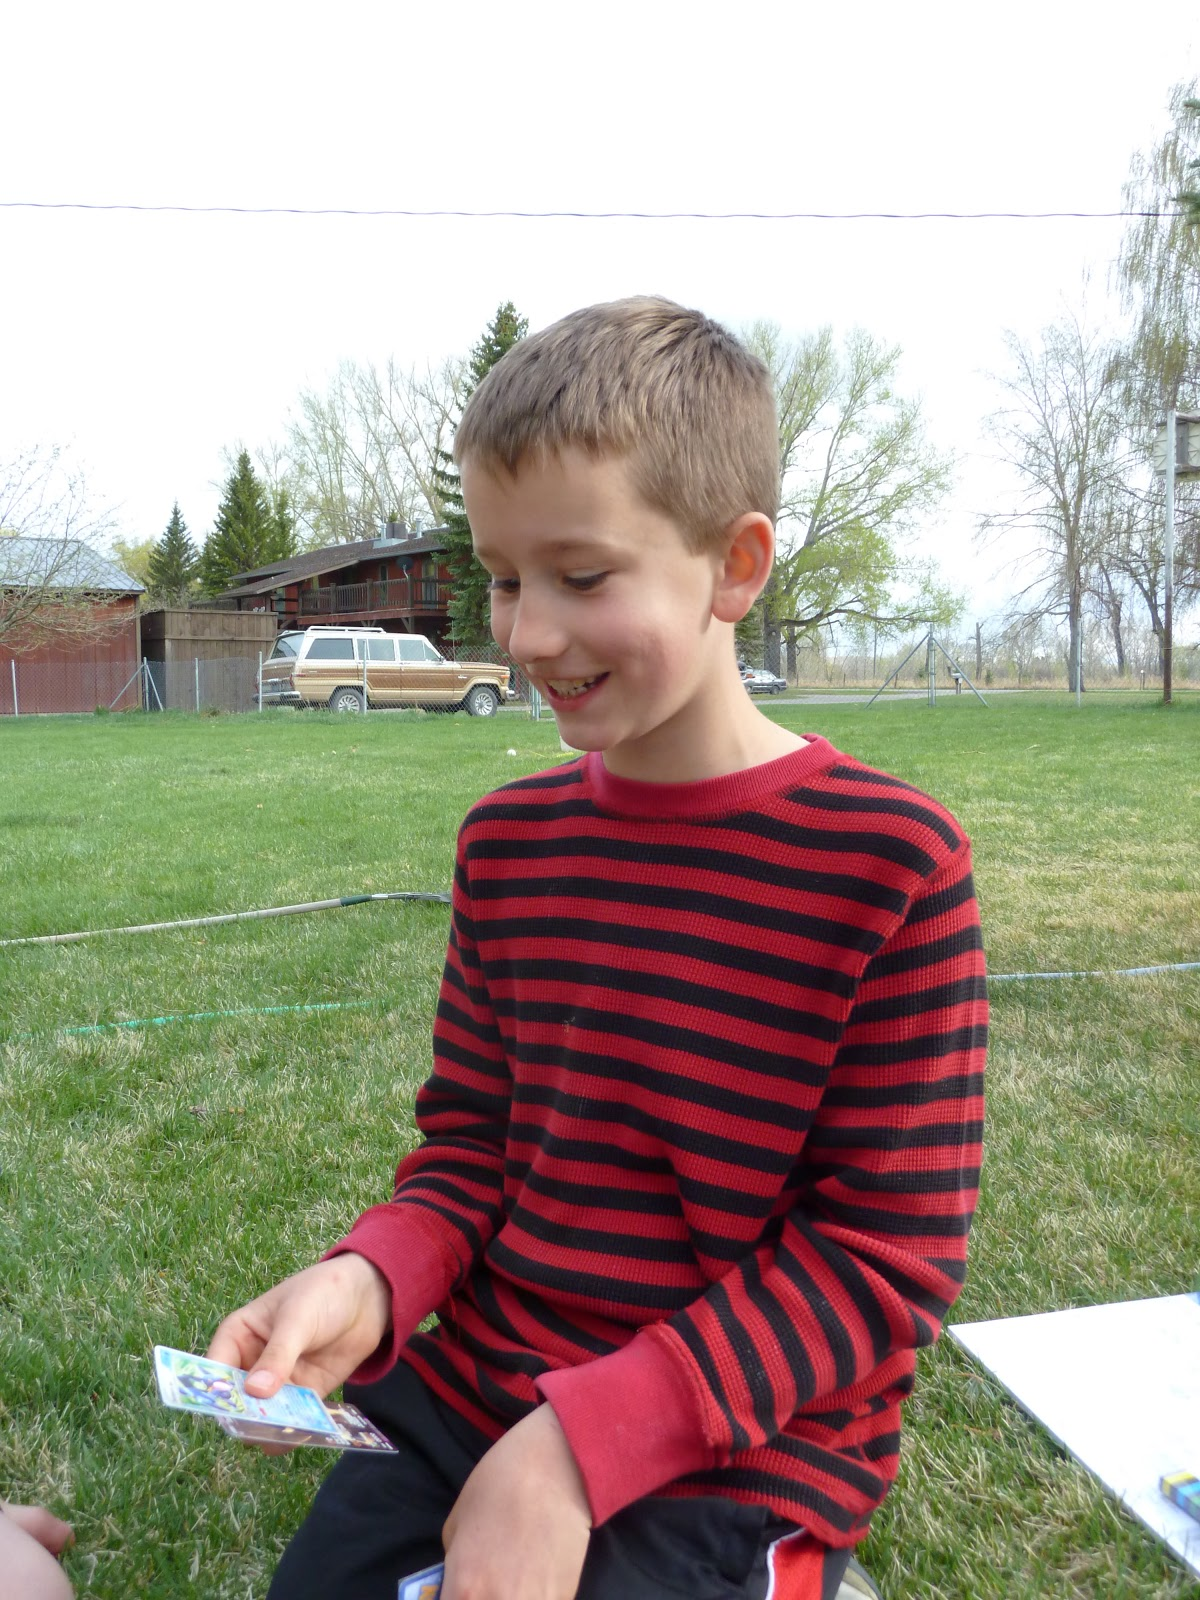 Life On The Front Prayer Of An 11 Year Old Boy